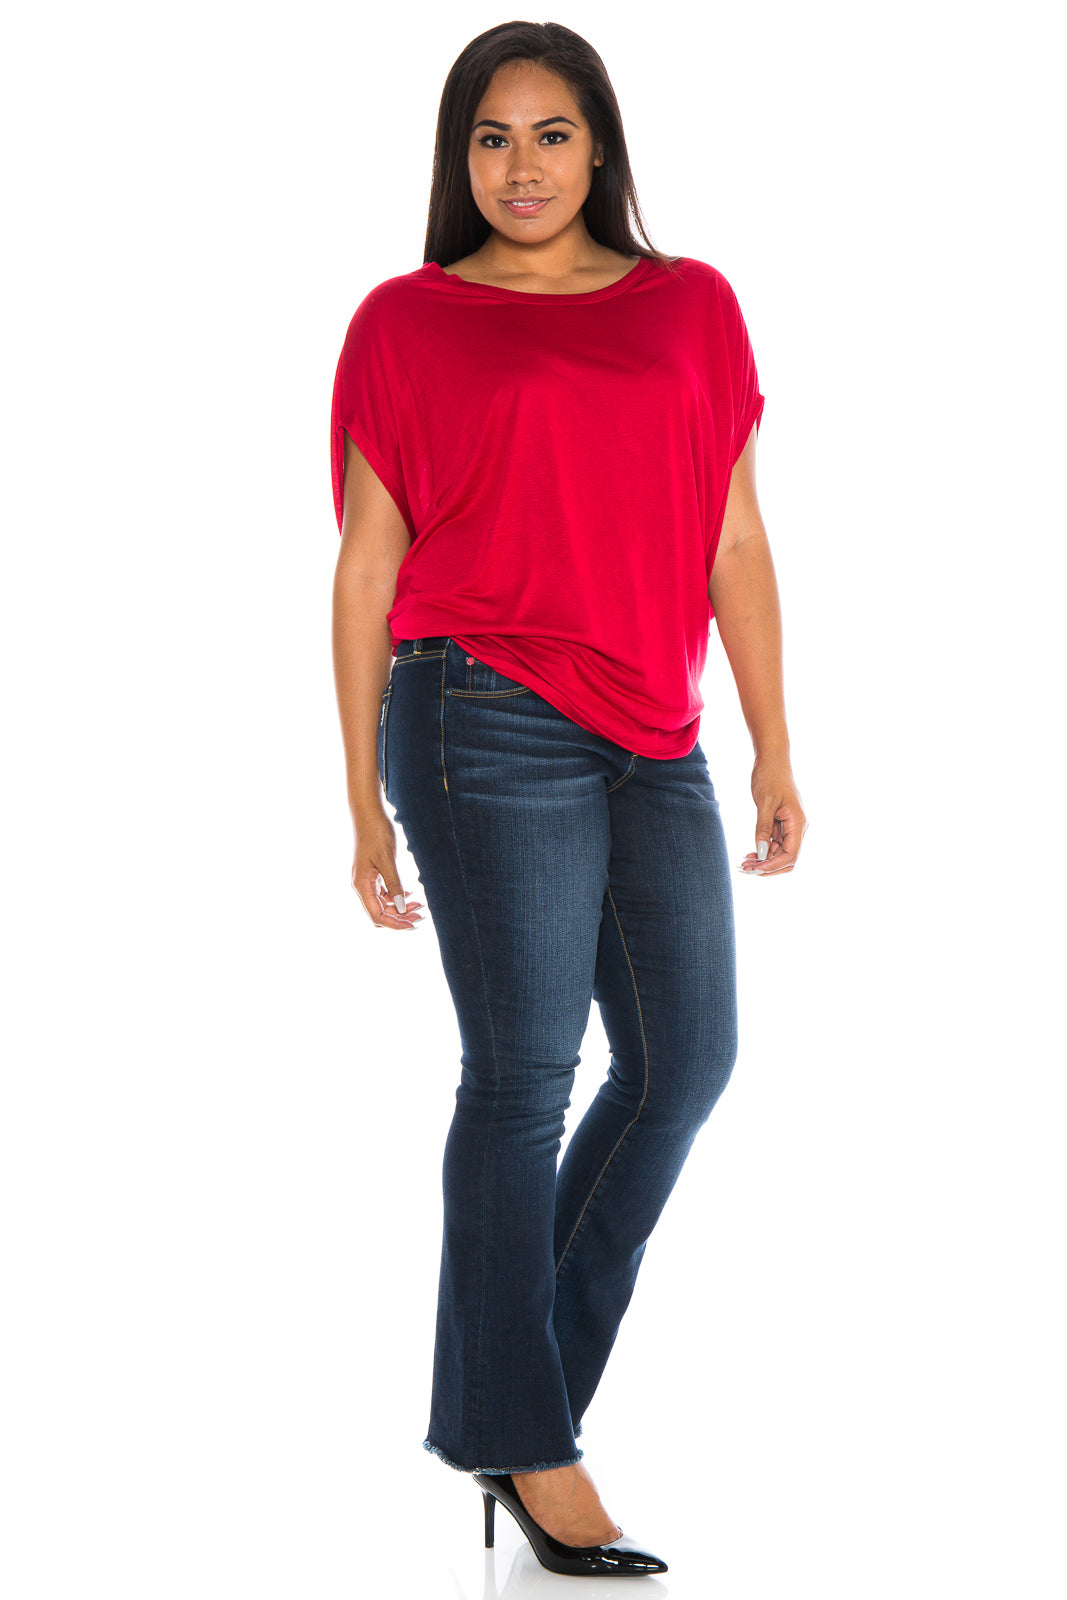 The Scoop Neck Dolman - RED